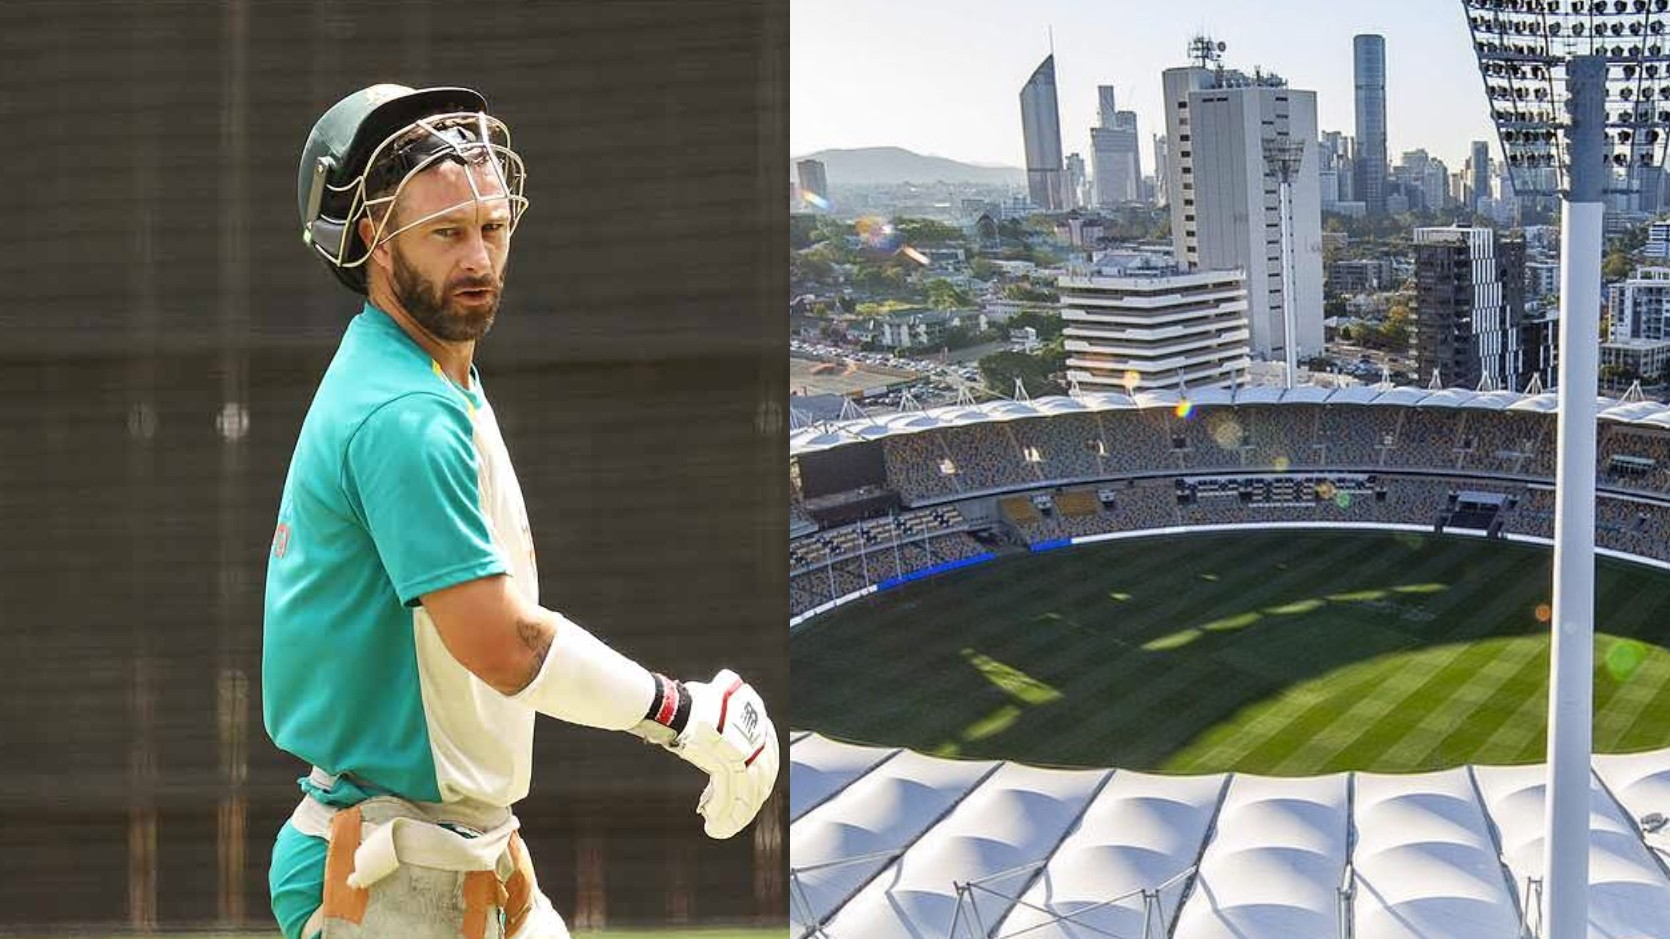 """AUS v IND 2020-21: """"We fully expect to play the final Test in Brisbane,"""" says Matthew Wade"""